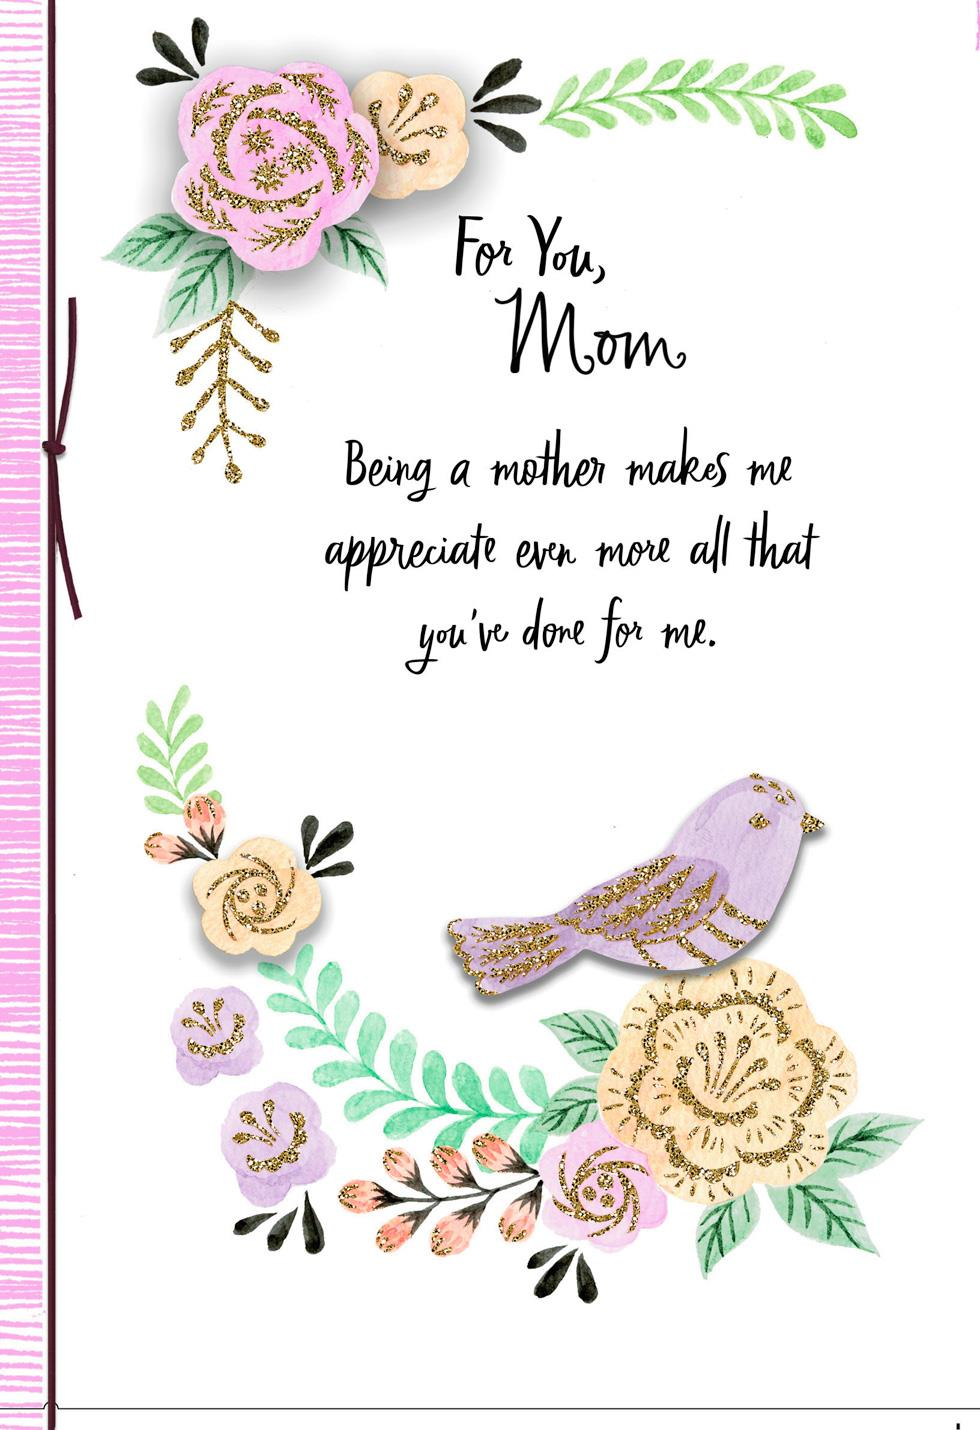 Happiness and love mothers day card from daughter greeting cards happiness and love mothers day card from daughter m4hsunfo